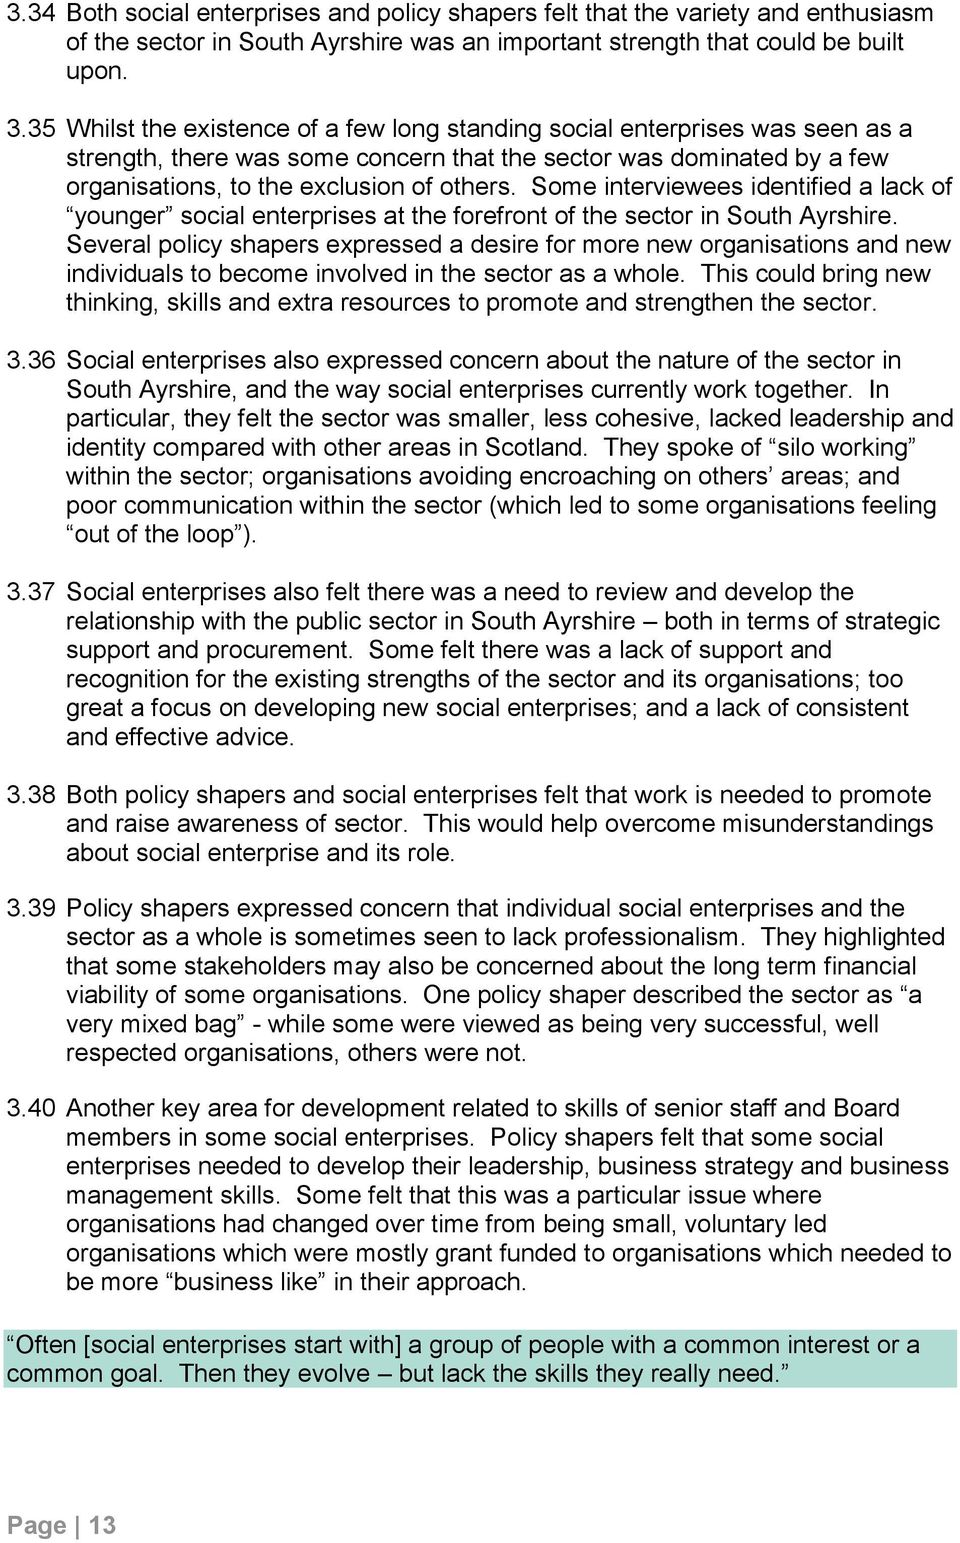 Some interviewees identified a lack of younger social enterprises at the forefront of the sector in South Ayrshire.